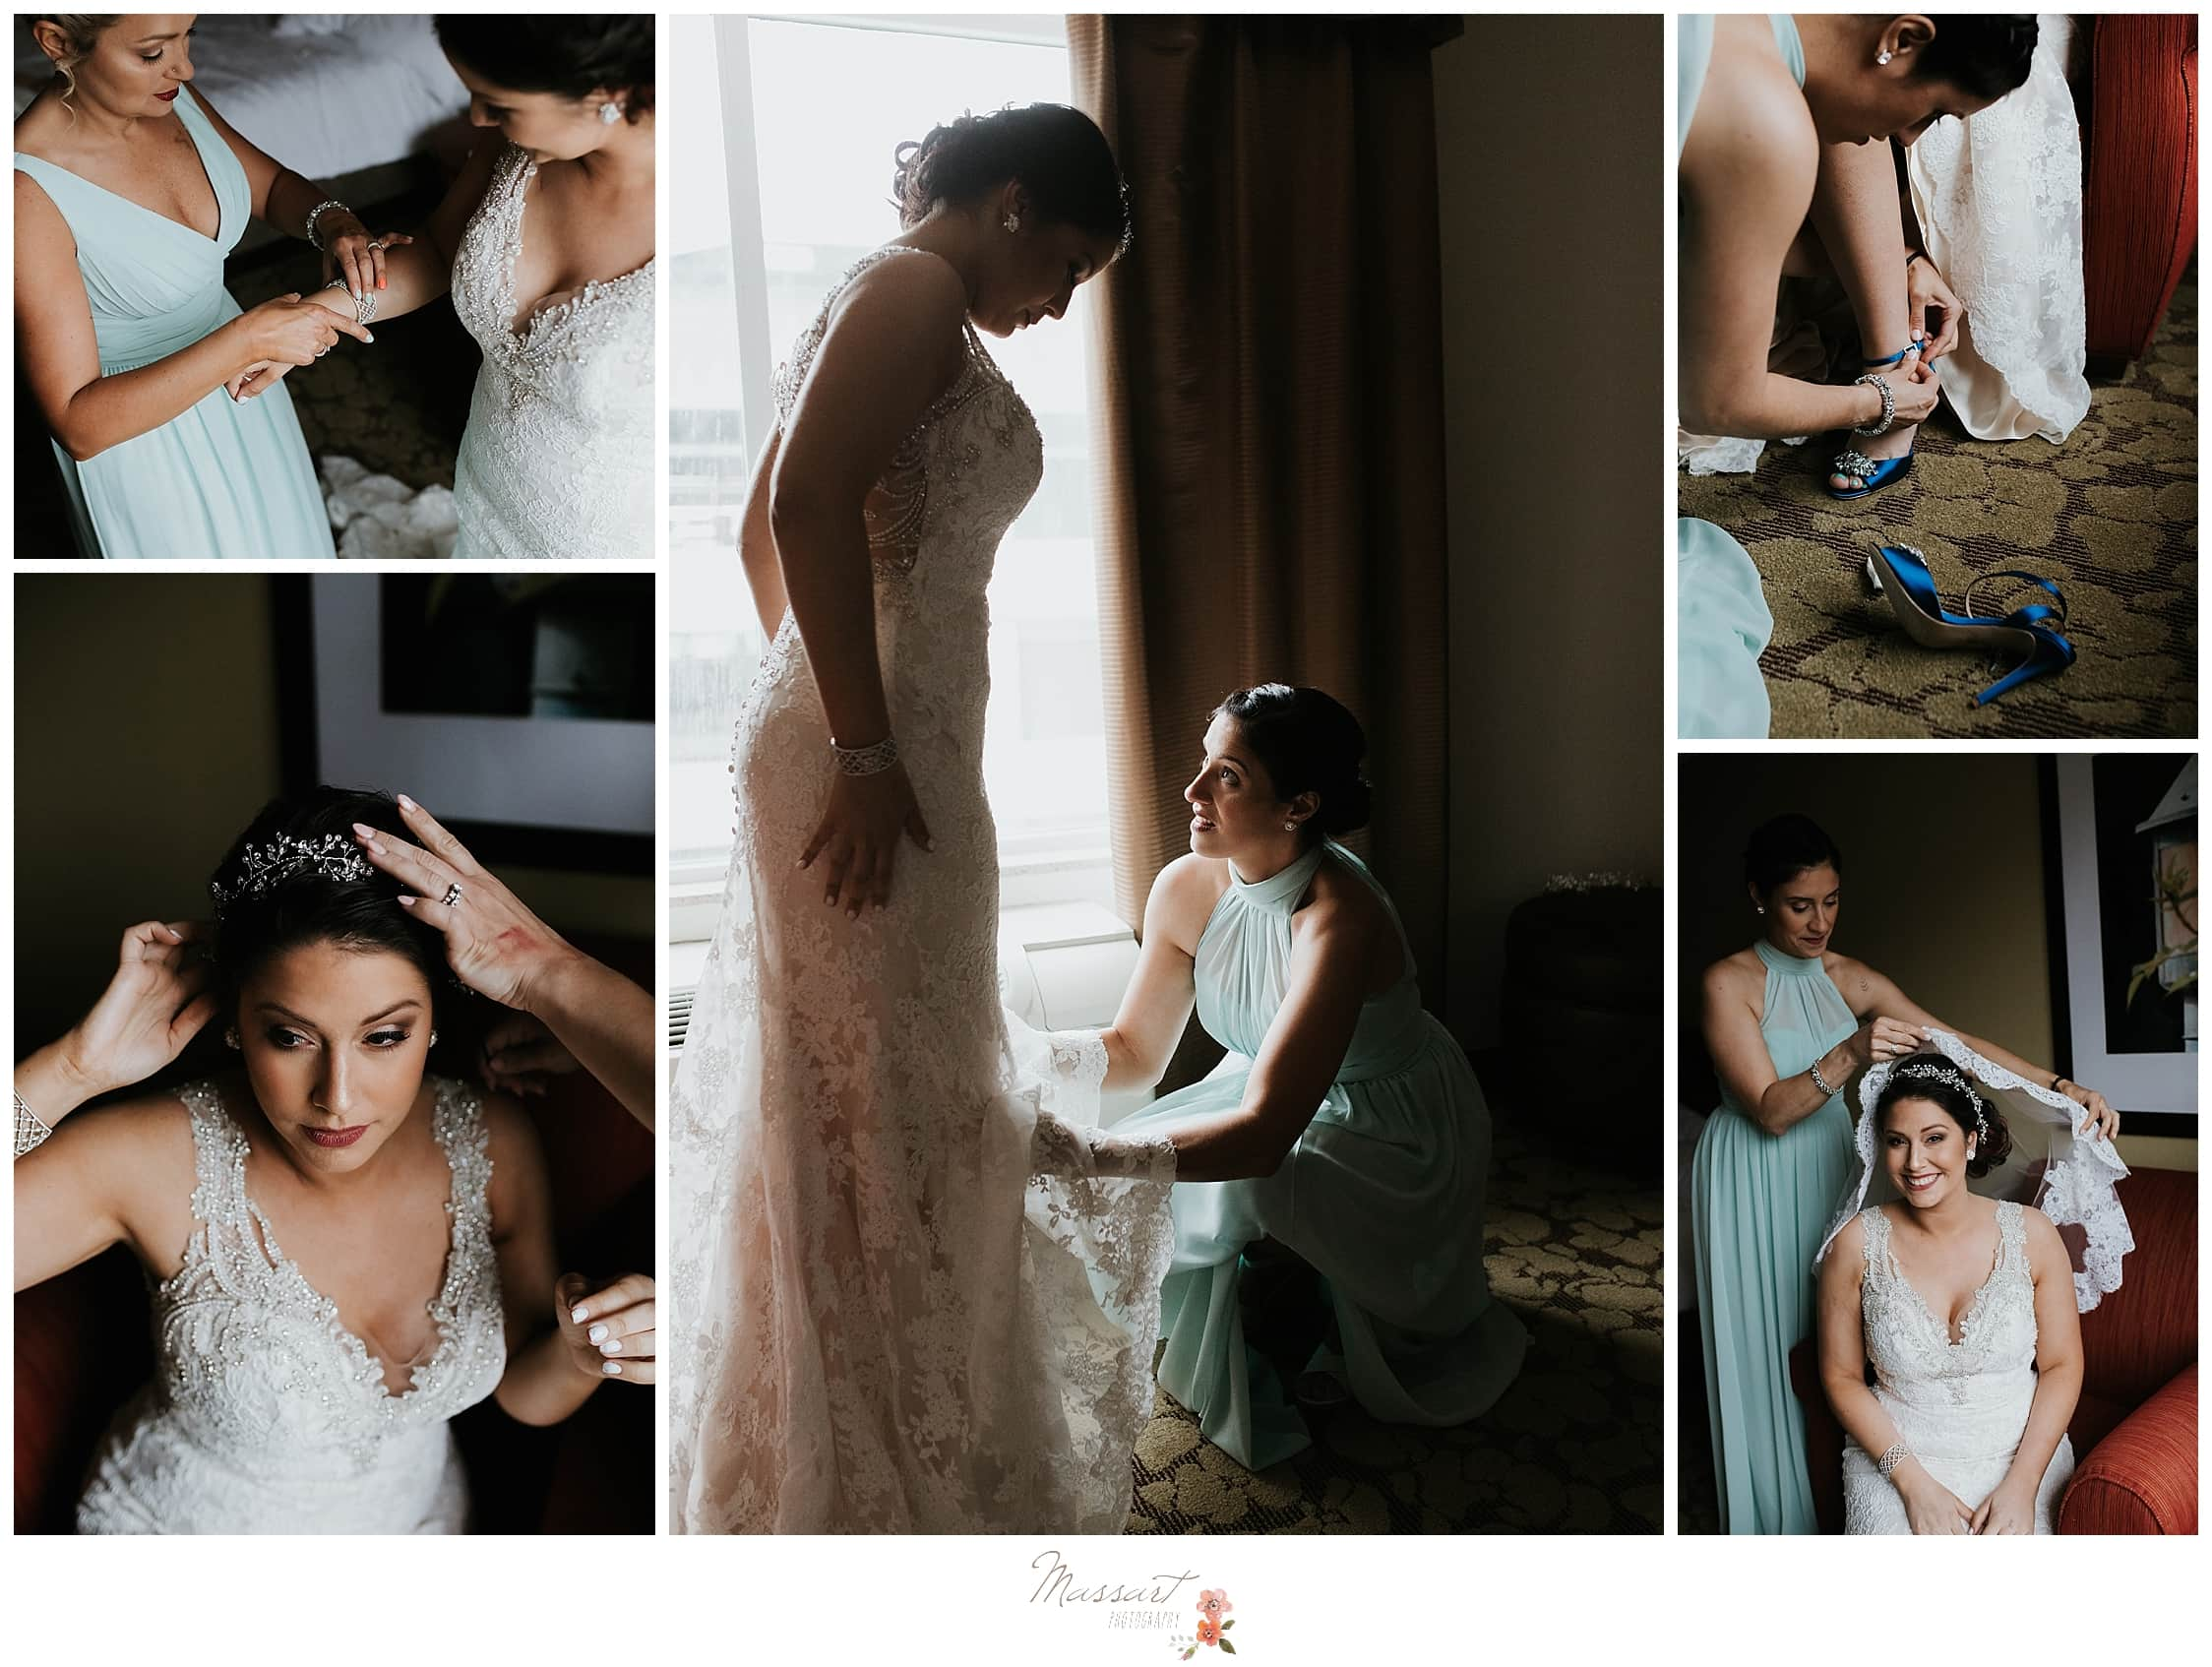 Bride puts veil and shoes on with bridesmaids before summer wedding in RI captured by Massart Photography, CT wedding photographers who offer family and newborn sessions.